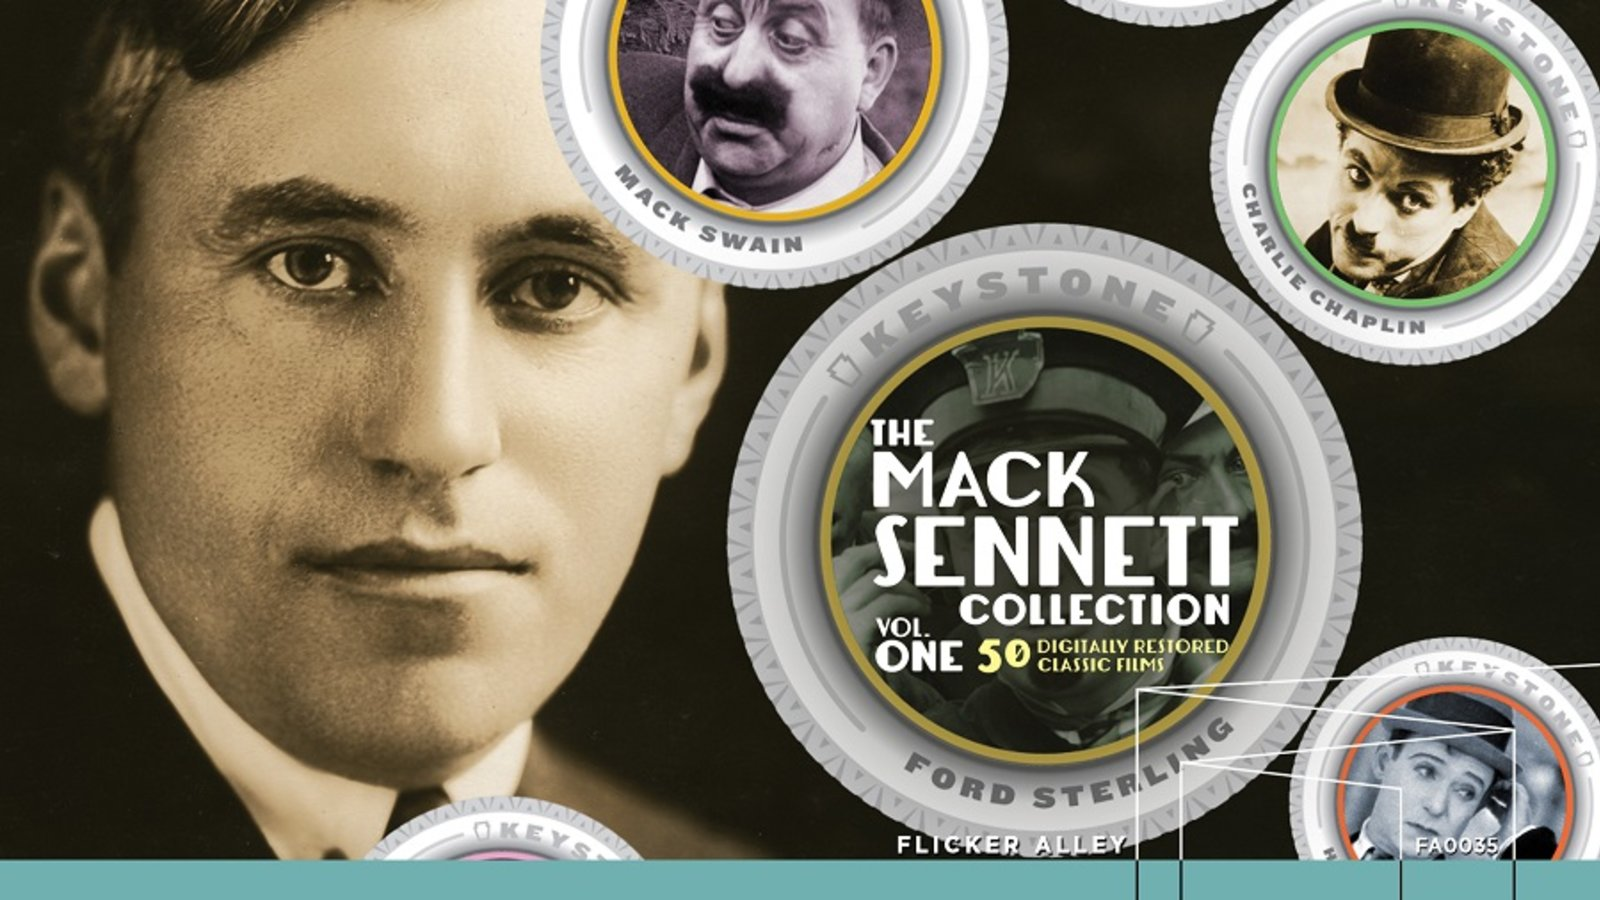 Mack Sennett Collection Volume One